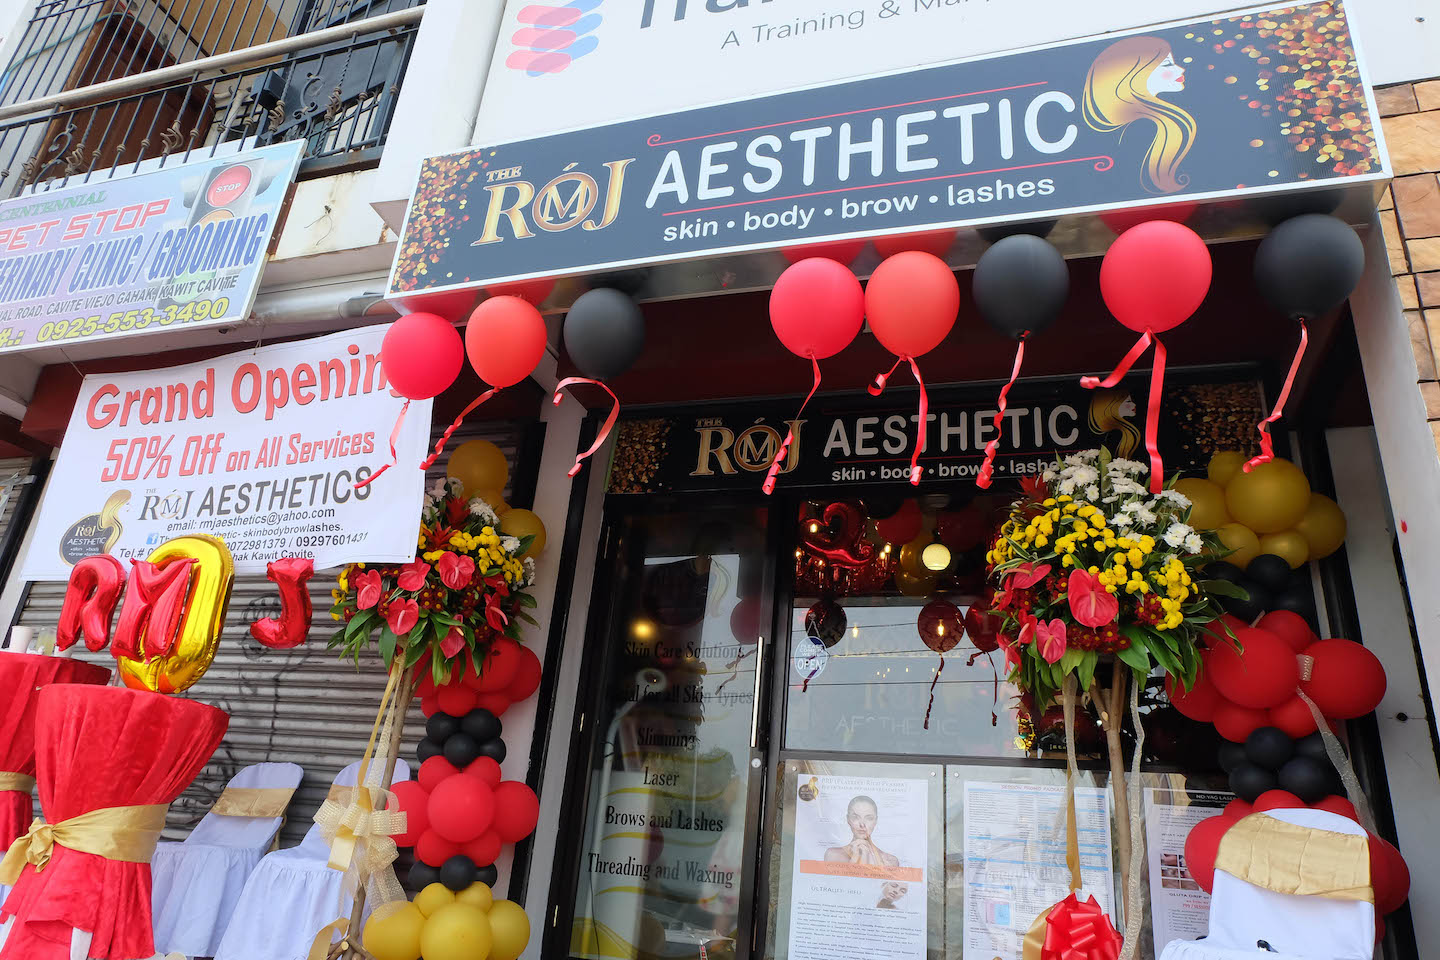 RMJ Aesthetics Opens in Kawit, Cavite for Your Skin Body, Lashes, Brows